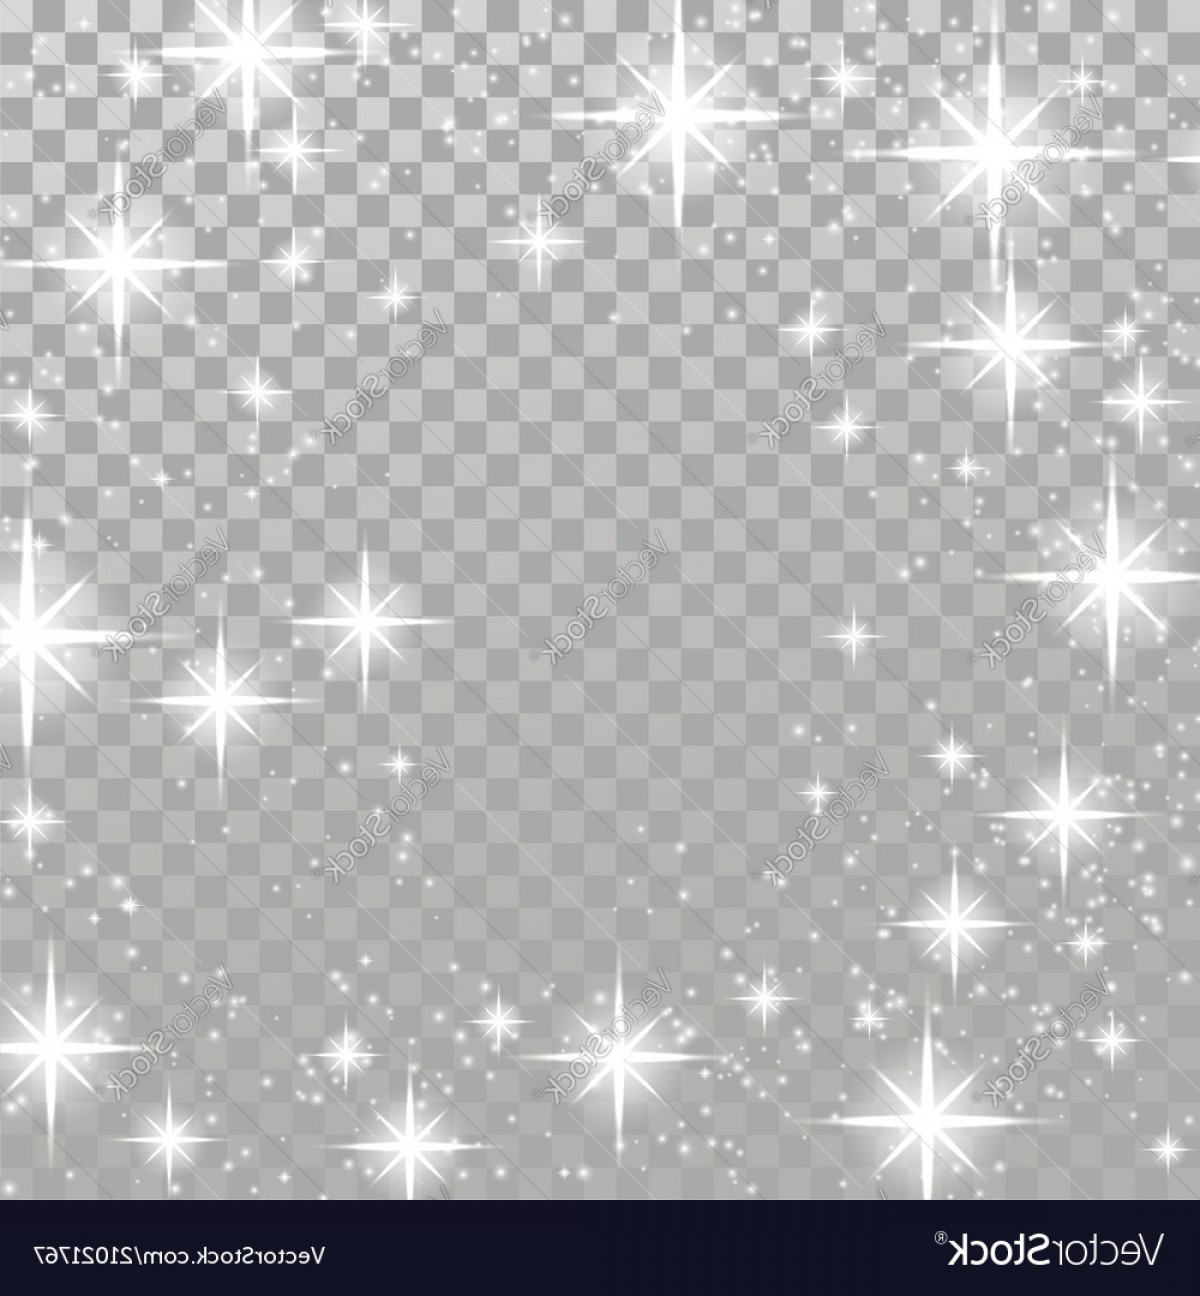 Twinkle Light Vector: Bright Star Twinkle Glow Shimmering Frame Layout Vector